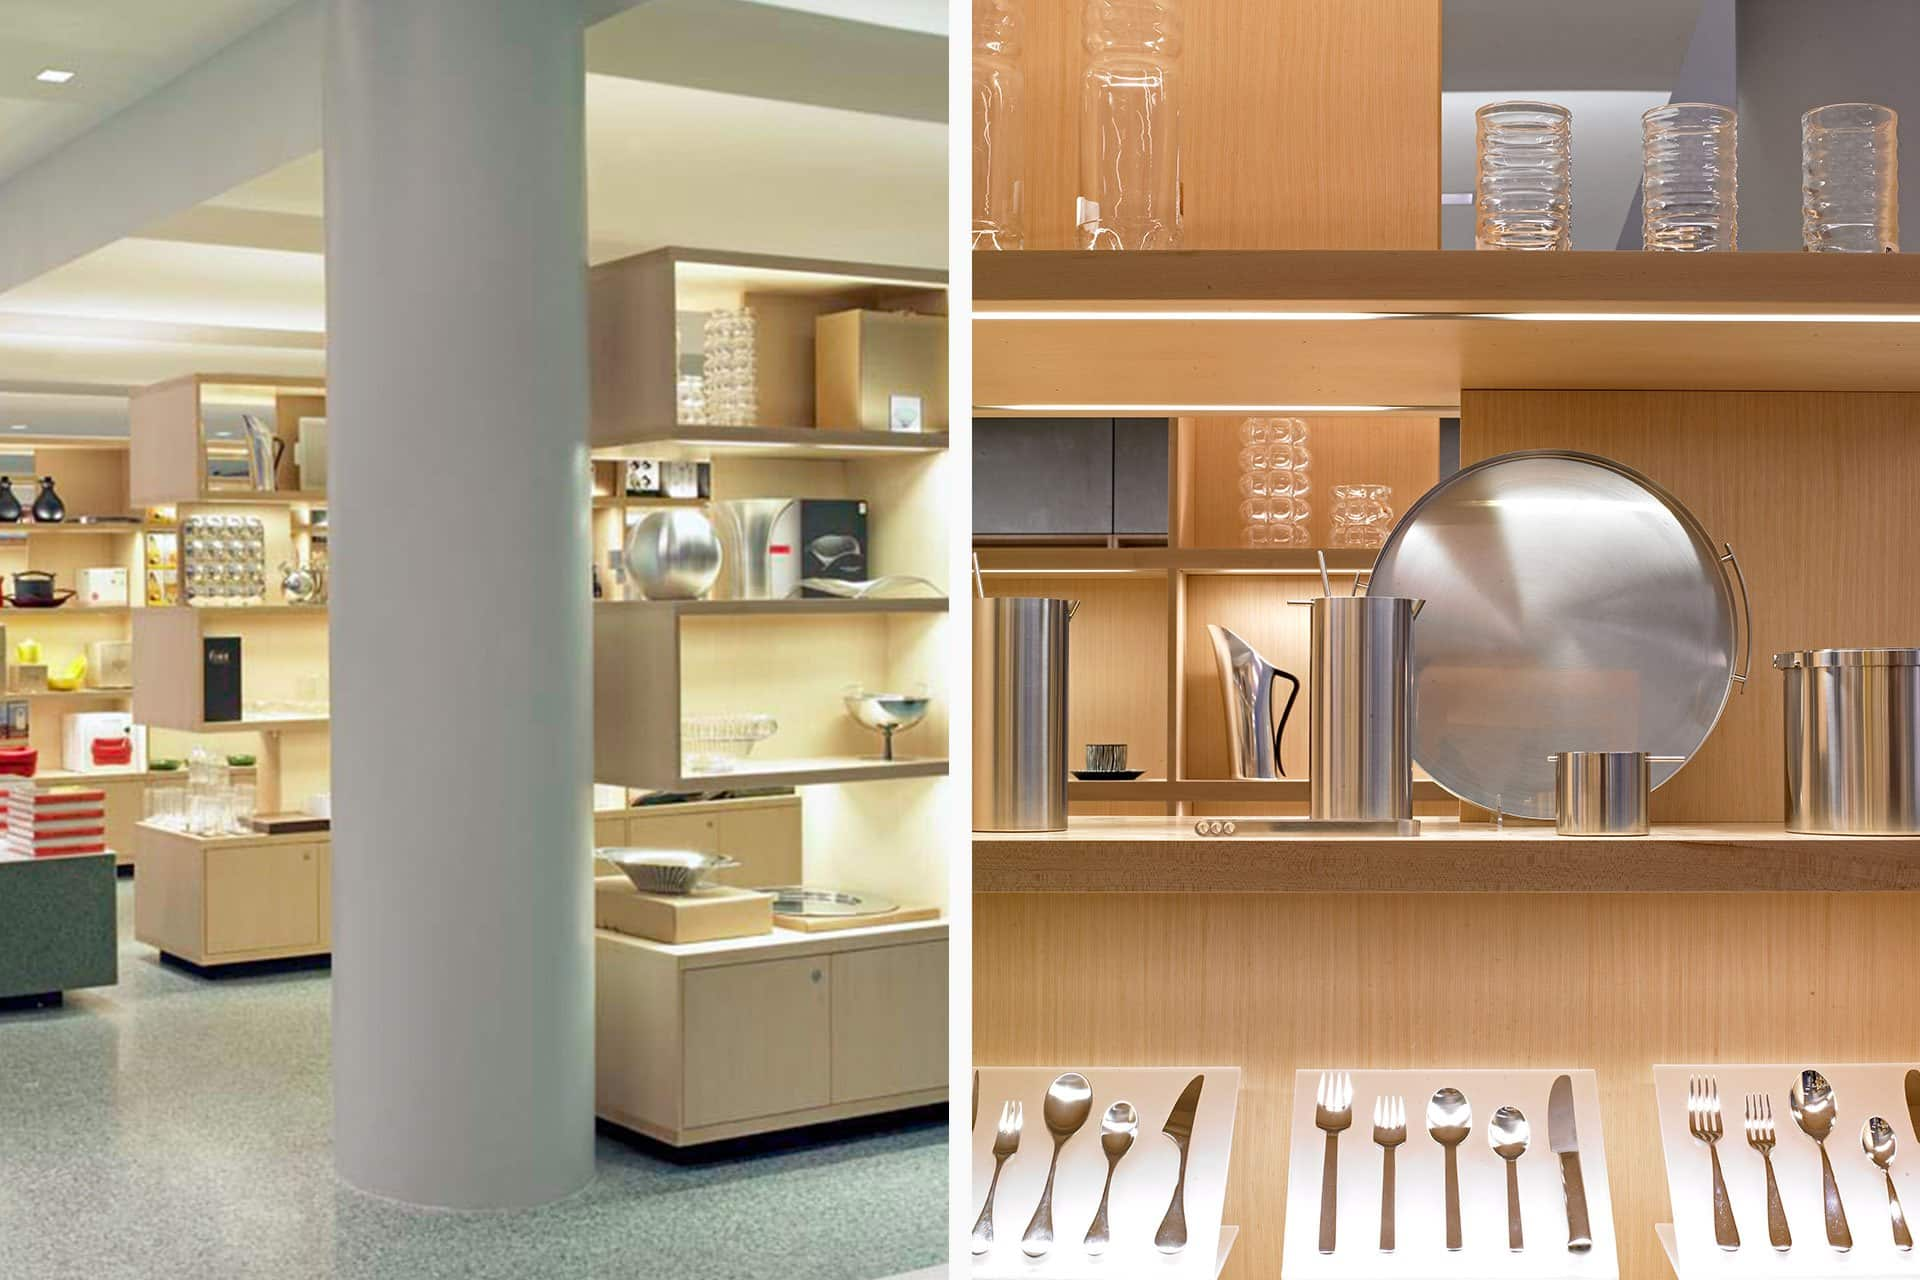 Museum of Modern Art (Moma) design store architectural design lighting Office For Visual Interaction